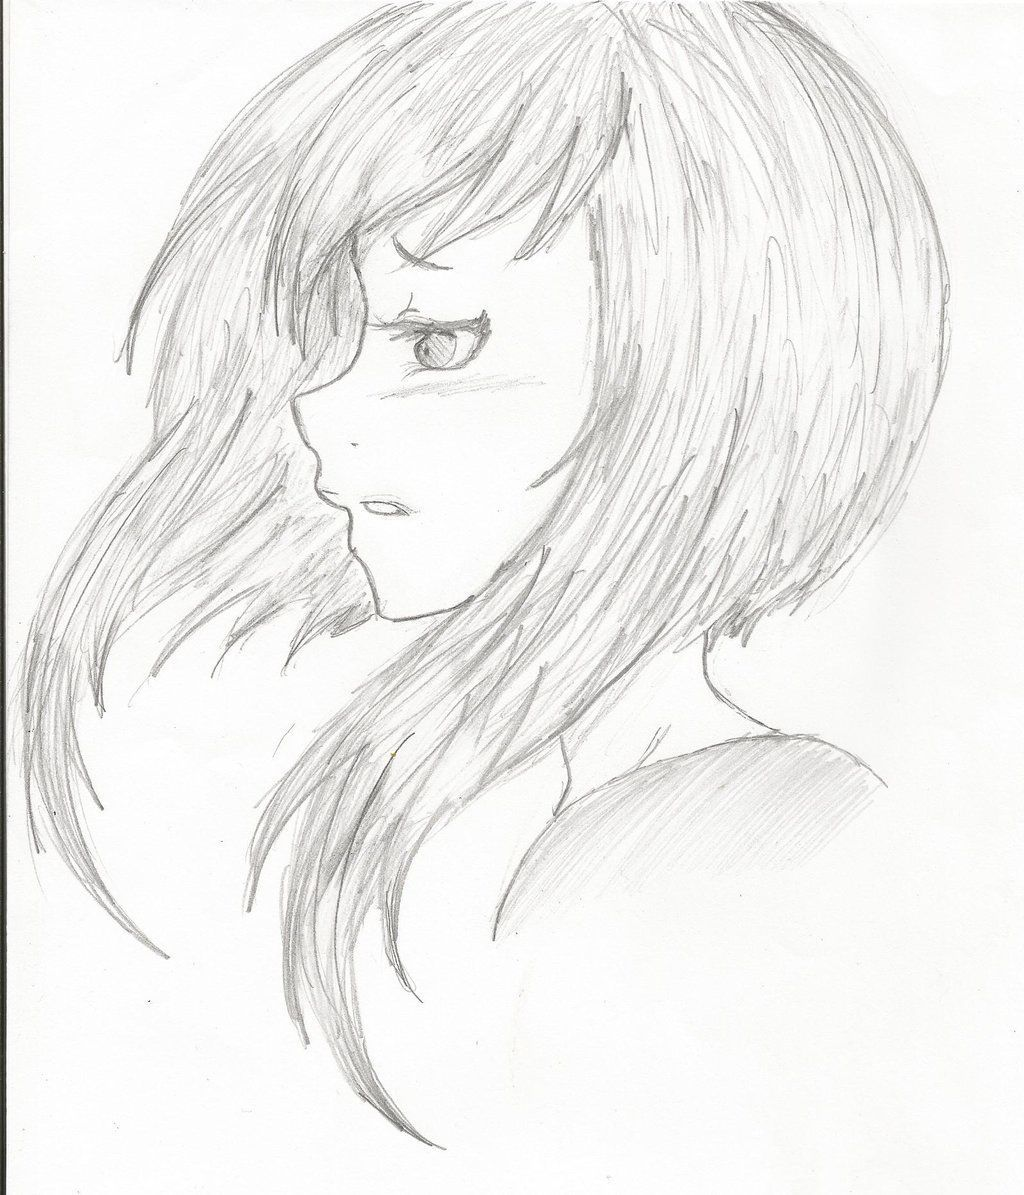 Manga girl hair side view eyes side